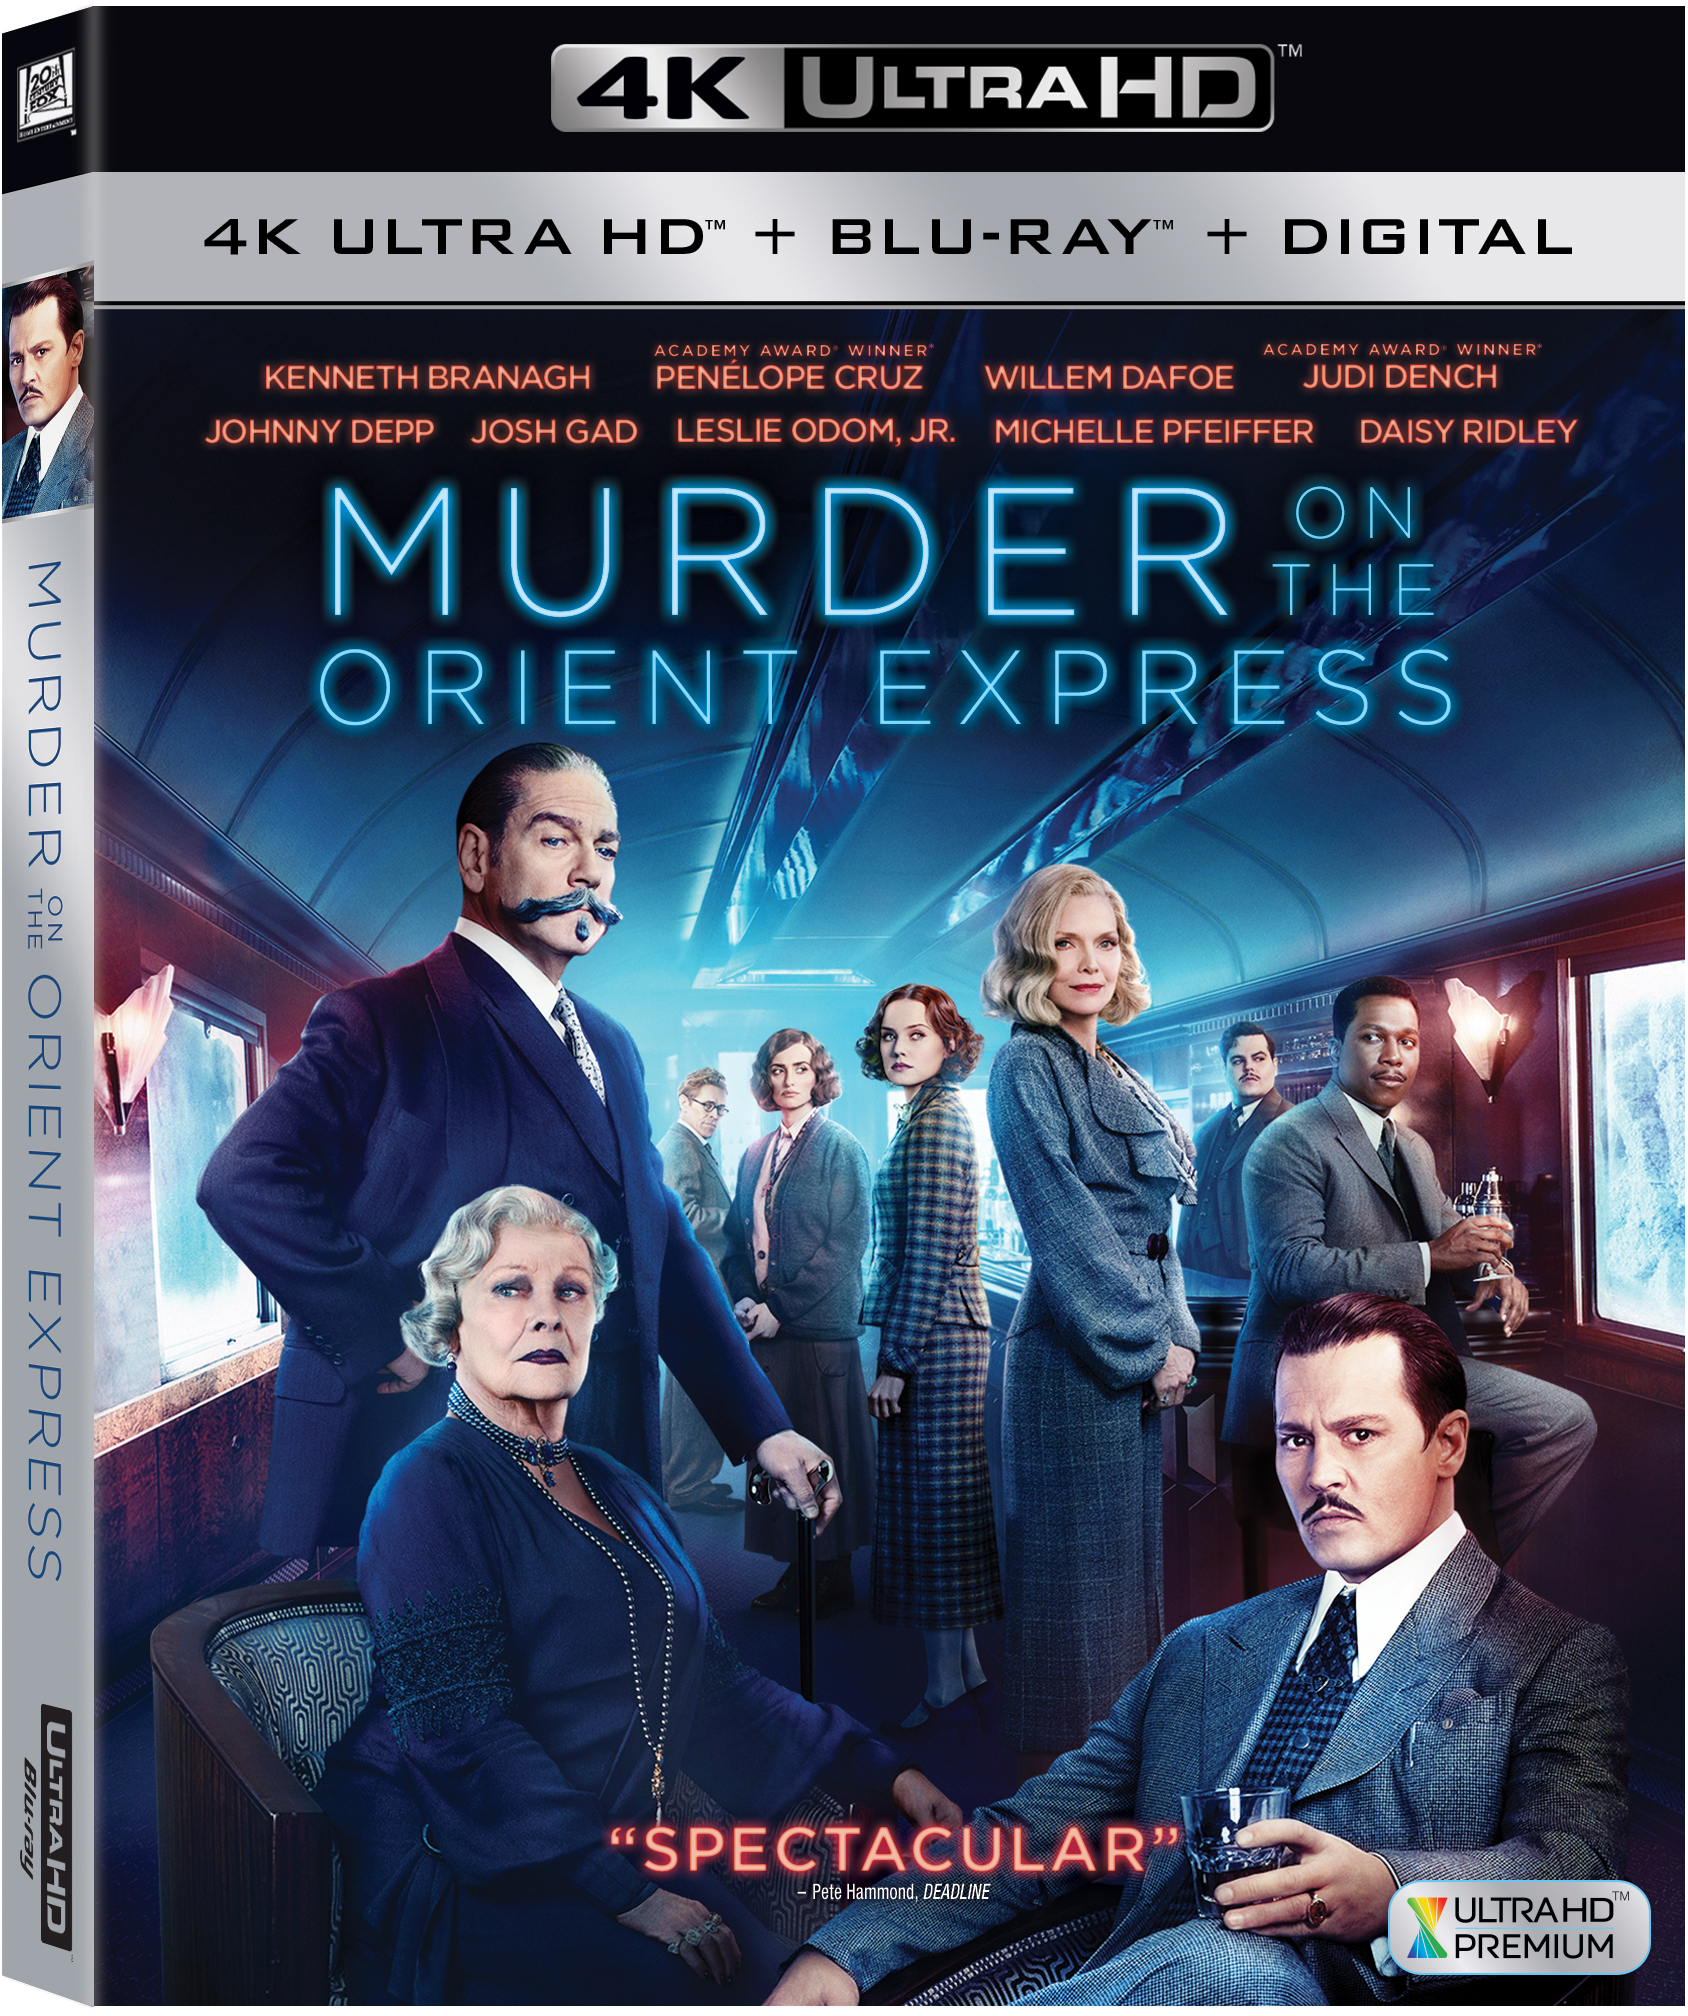 Murder on the Orient Express (4K Ultra HD + Blu-ray + Digital) by